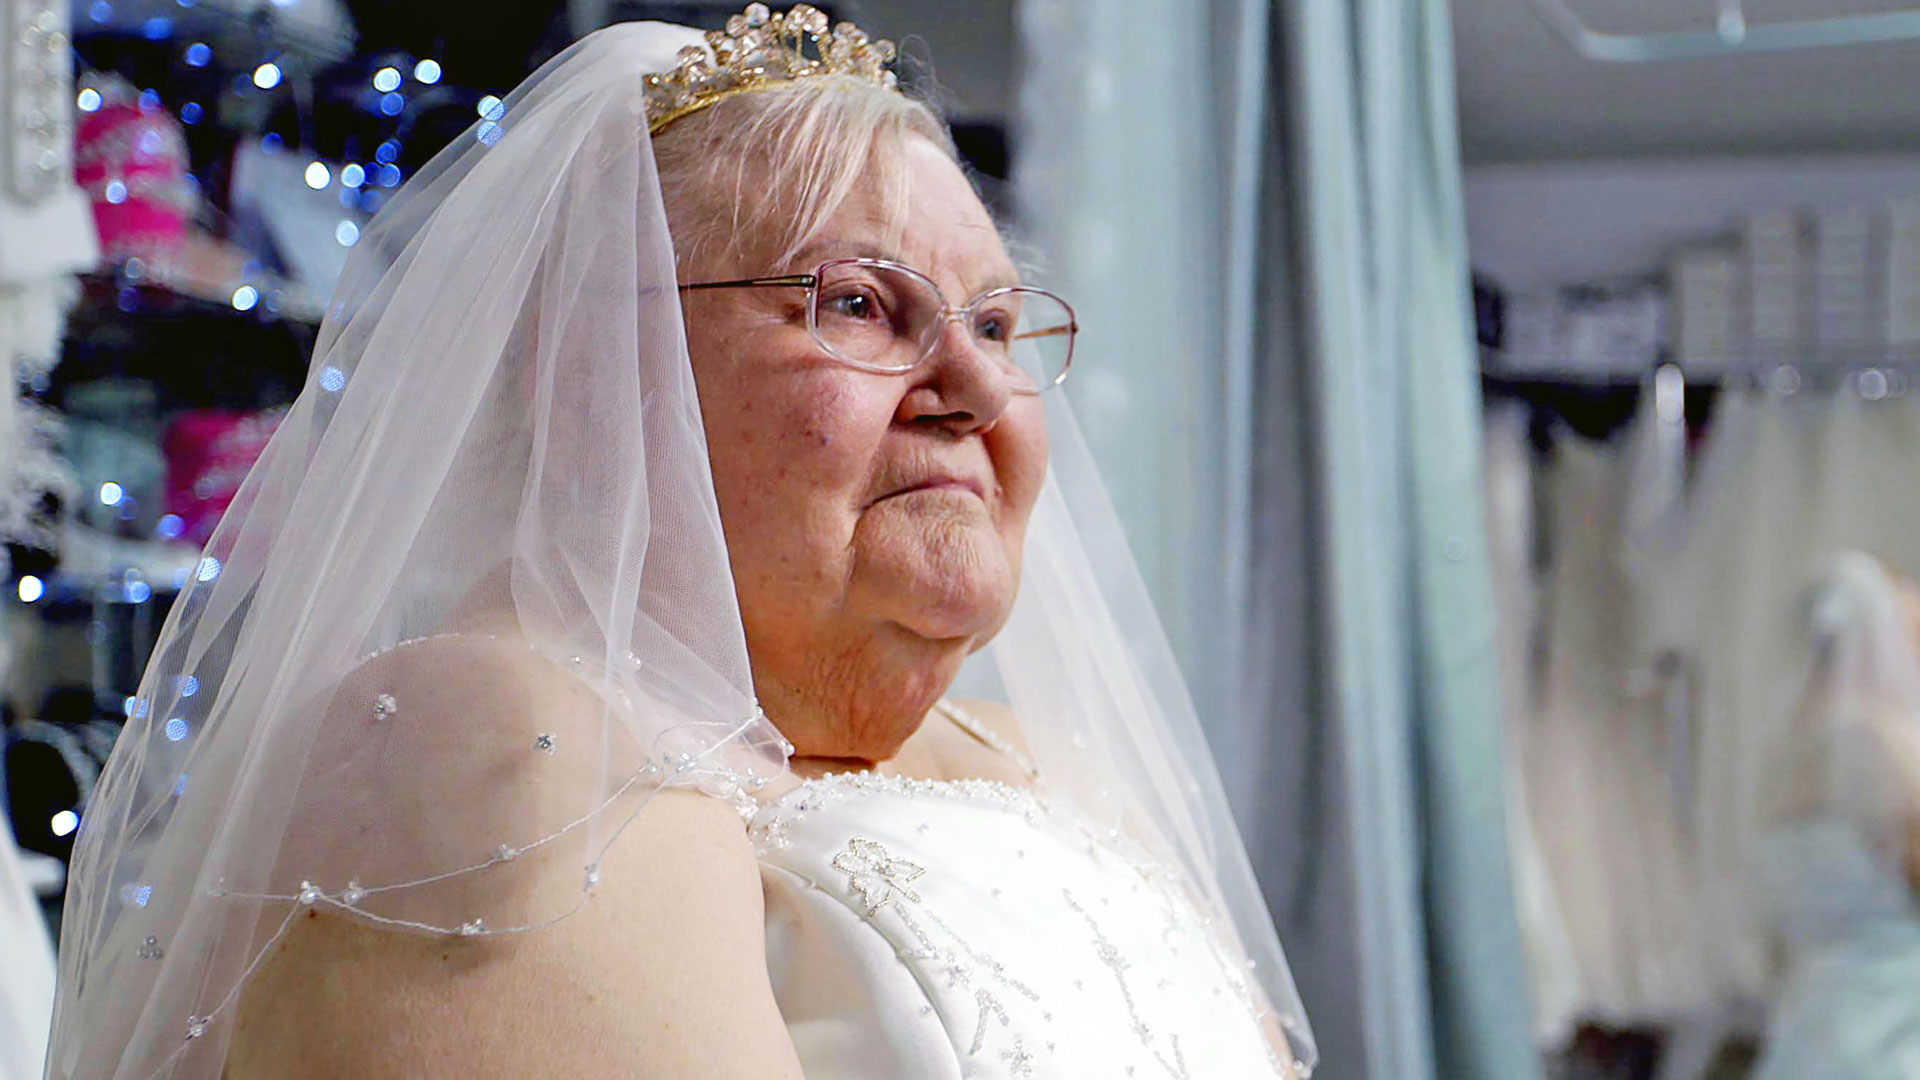 An elderly woman in a wedding dress